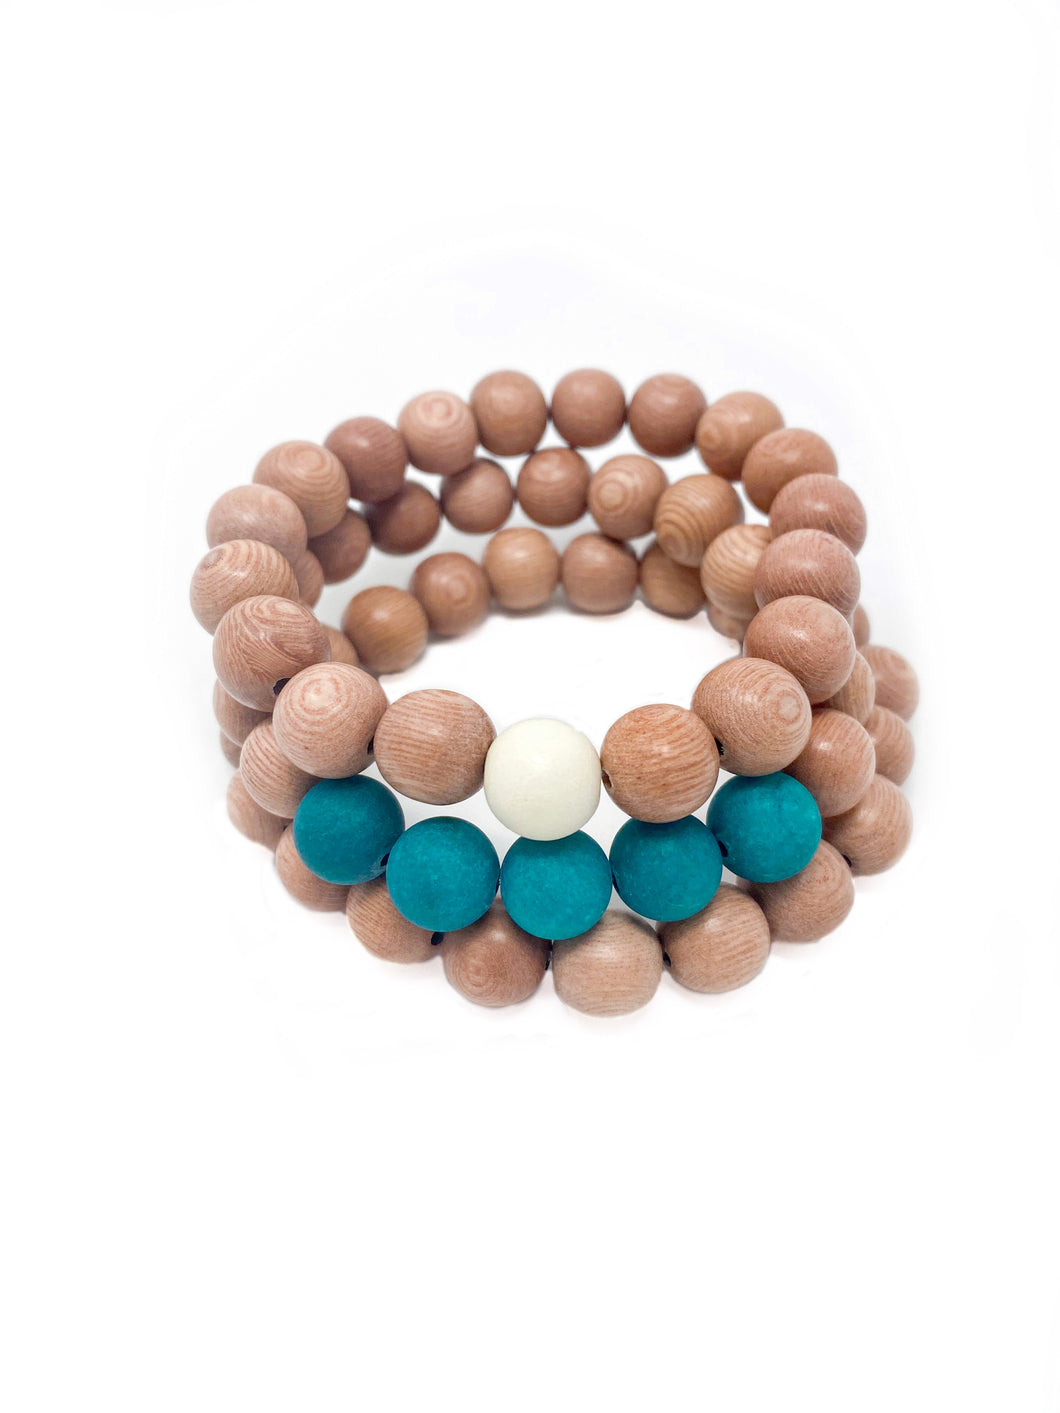 rosewood beaded bracelets | teal, cream, rosewood | three